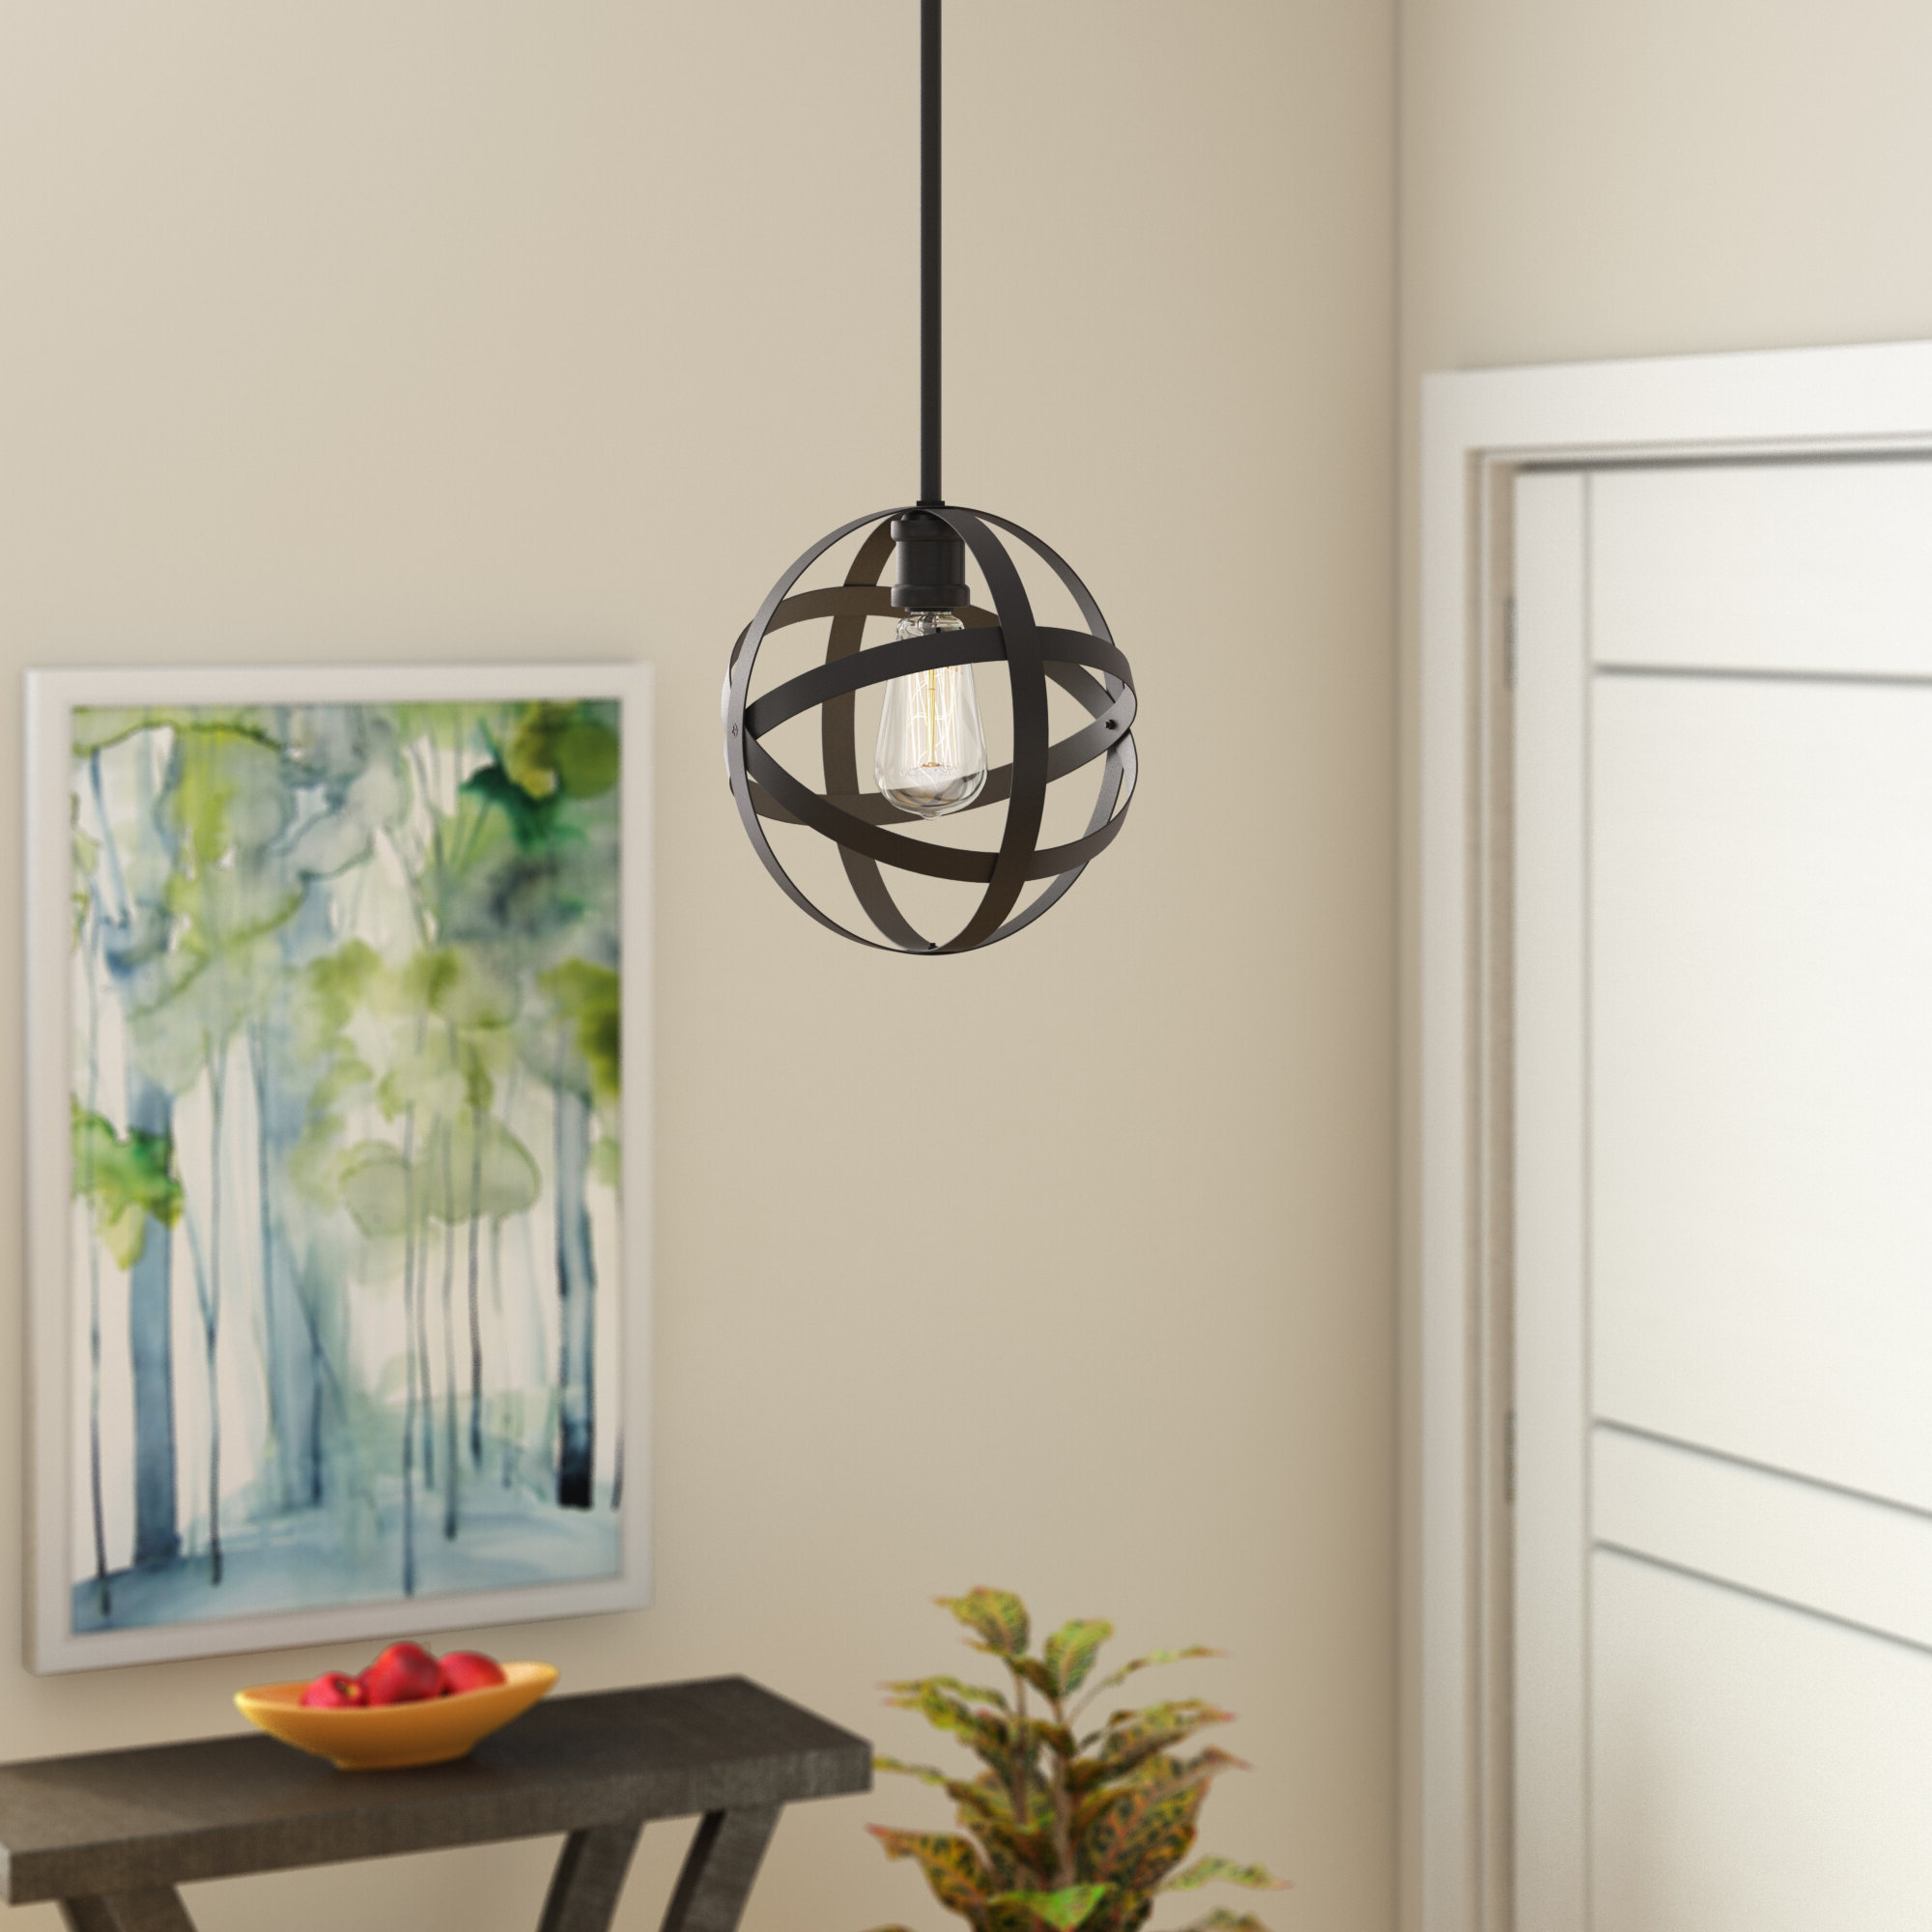 Wrought Studio Prange 1 Light Single Globe Pendant & Reviews Within Latest Prange 1 Light Single Globe Pendants (Gallery 1 of 20)